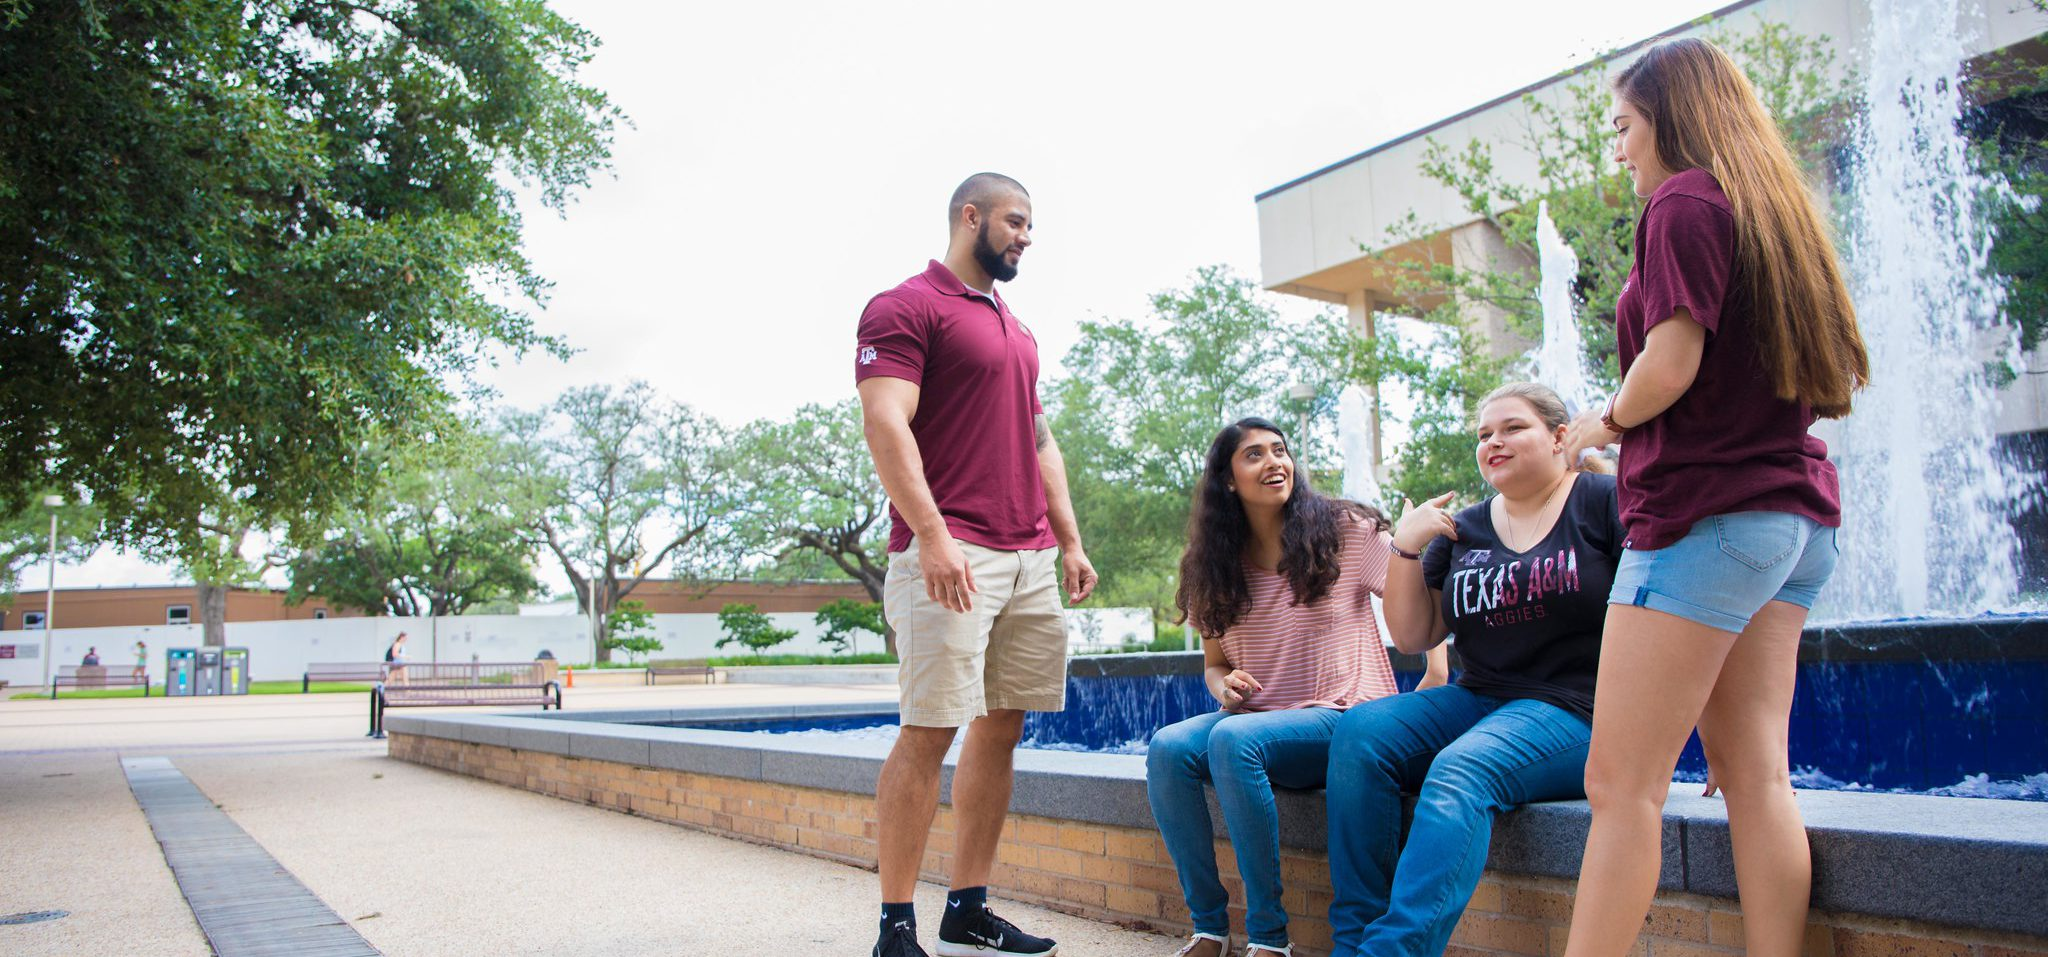 Stock Image of 4 students in front of Rudder Fountain.